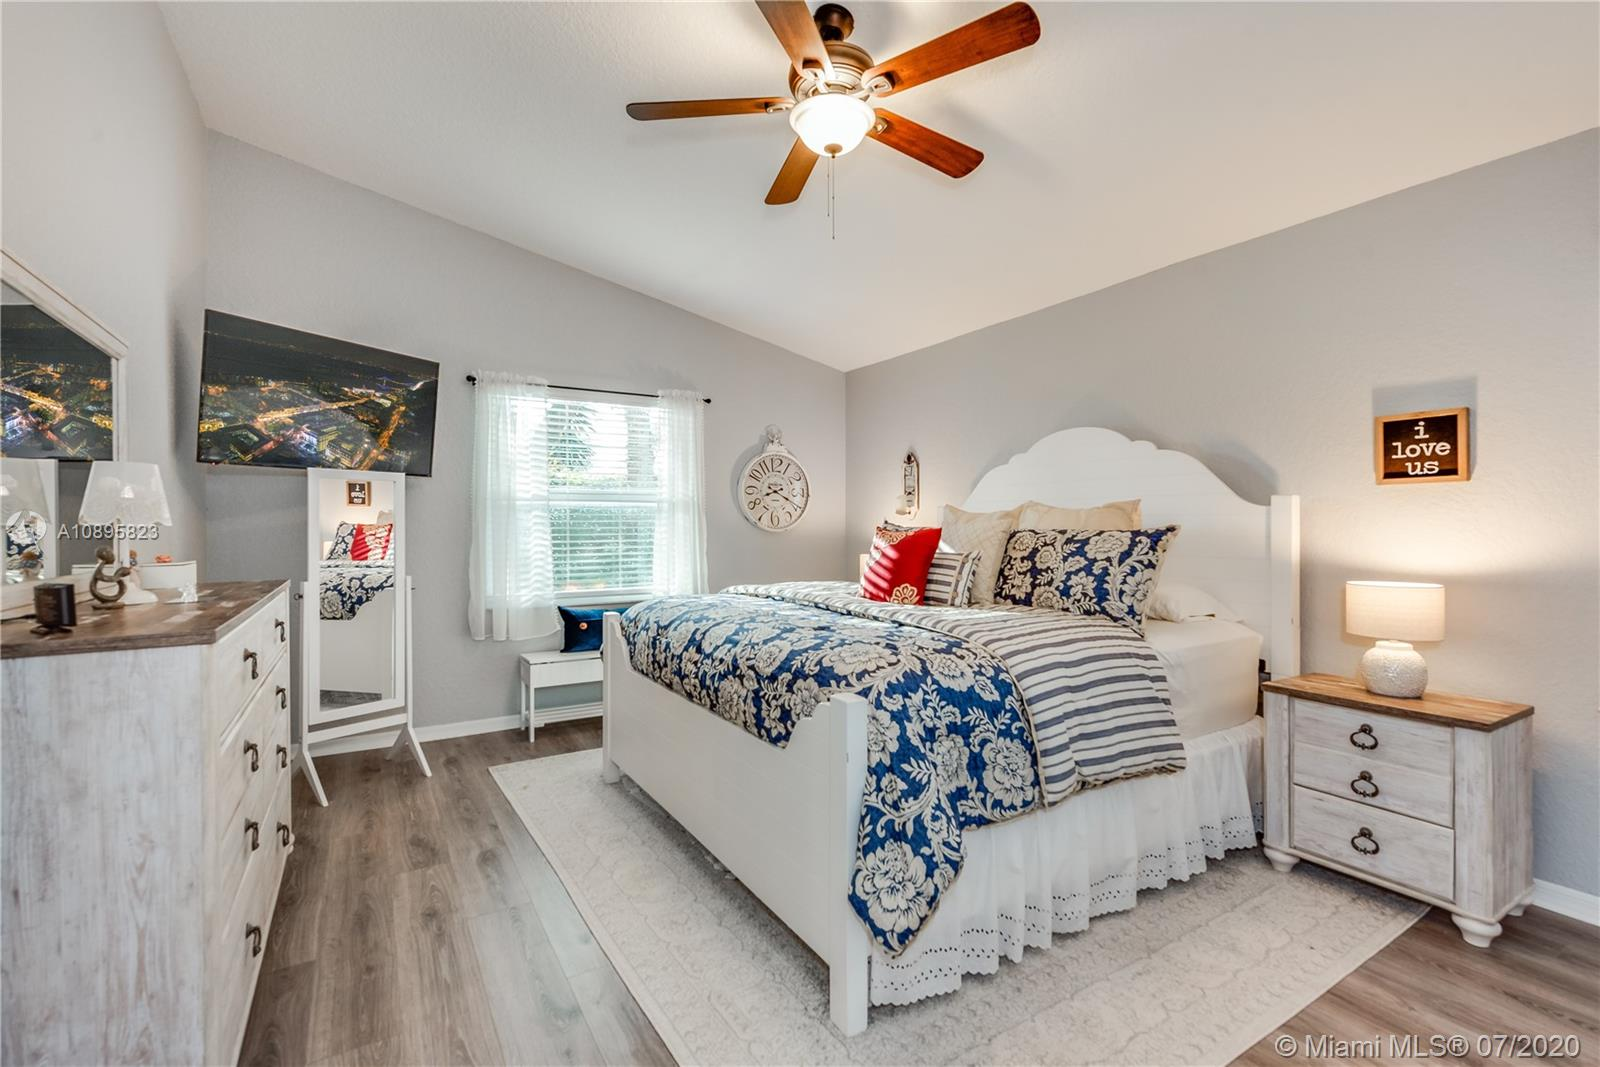 Master Suite fit for a king size bed with plank flooring